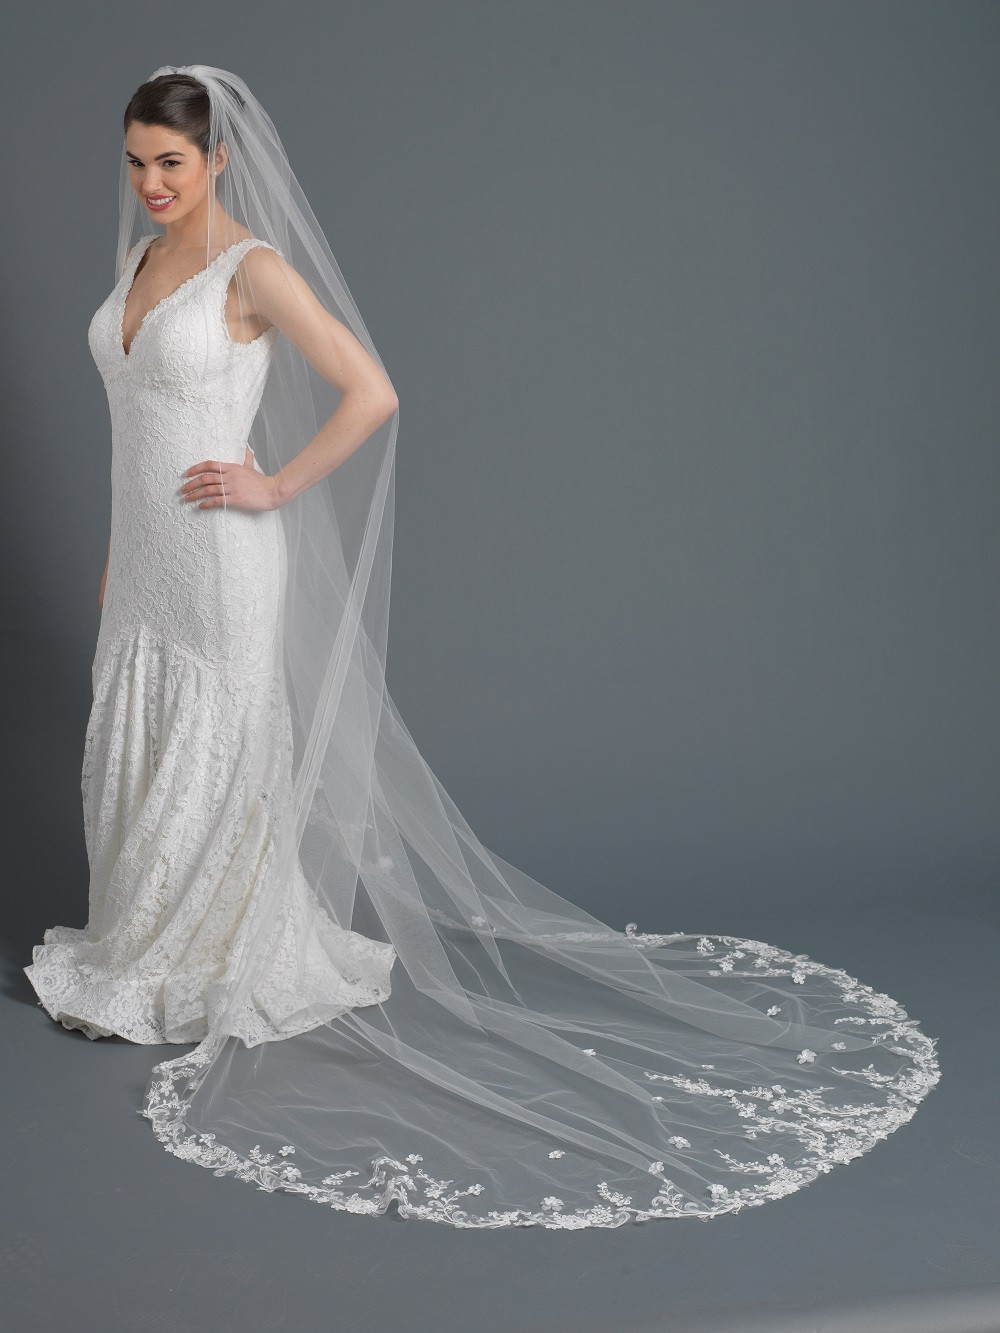 Cathedral Length Wedding Veil  Wholesale Bridal Cathedral length floral embroidered lace